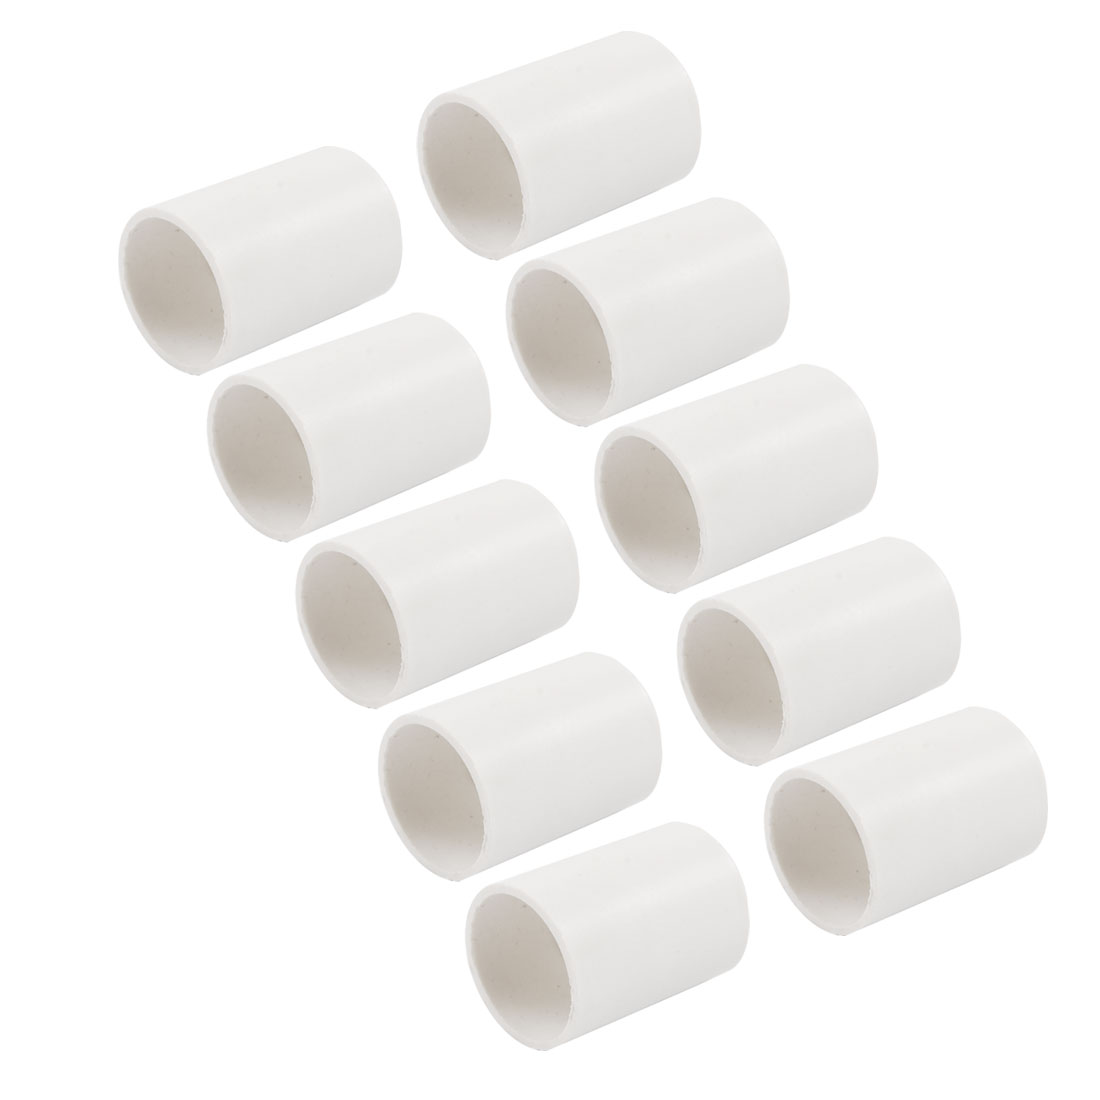 10 Pcs 25mm Inner Dia PVC Straight Pipe Connectors Fittings White